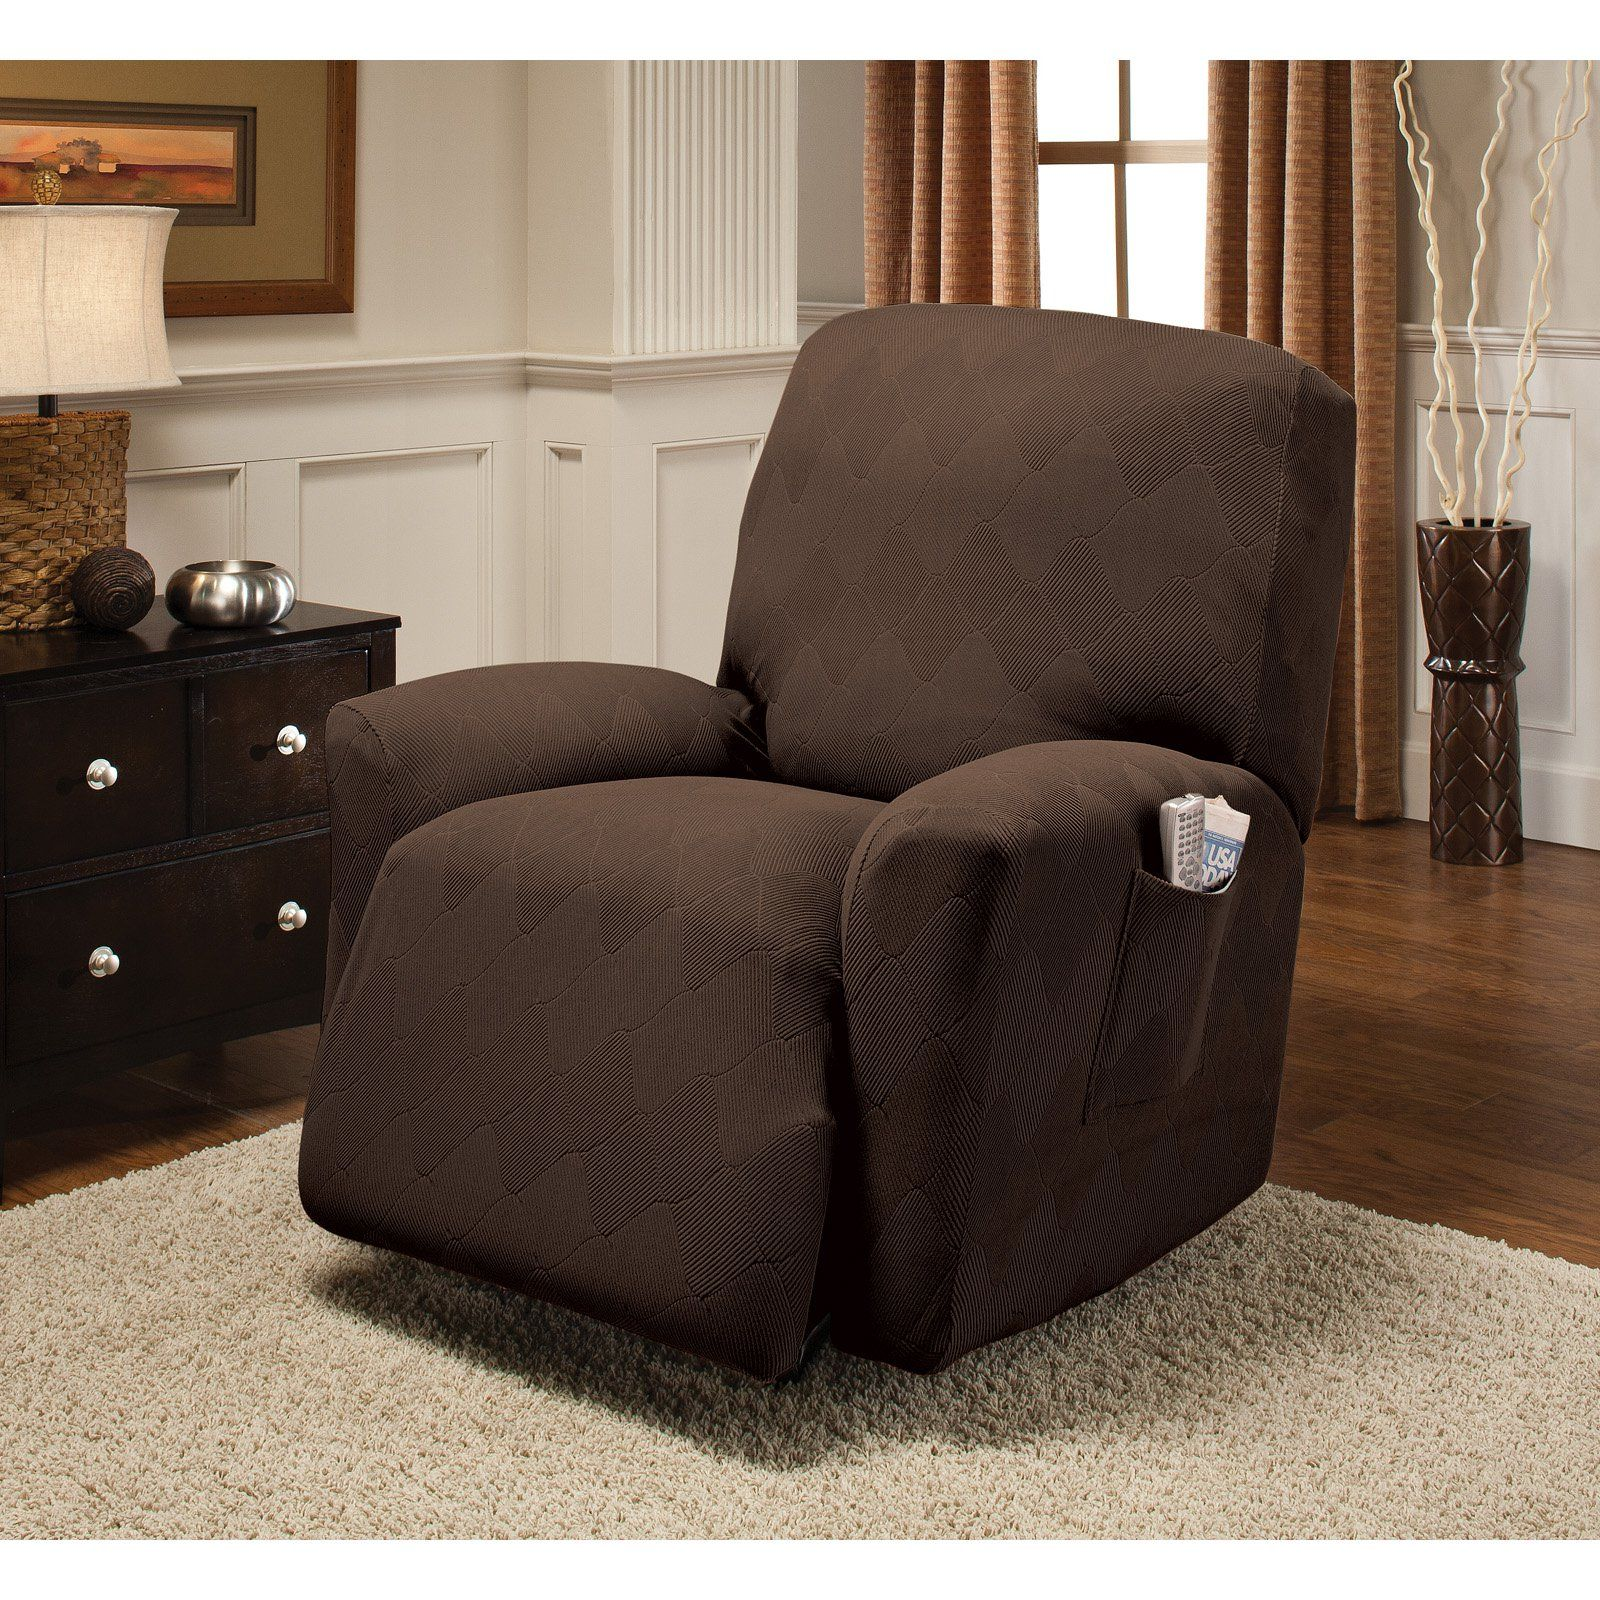 ideas best decoration and slipcover style slipcovers architecture trends beautiful recliners on design designing home top interior for